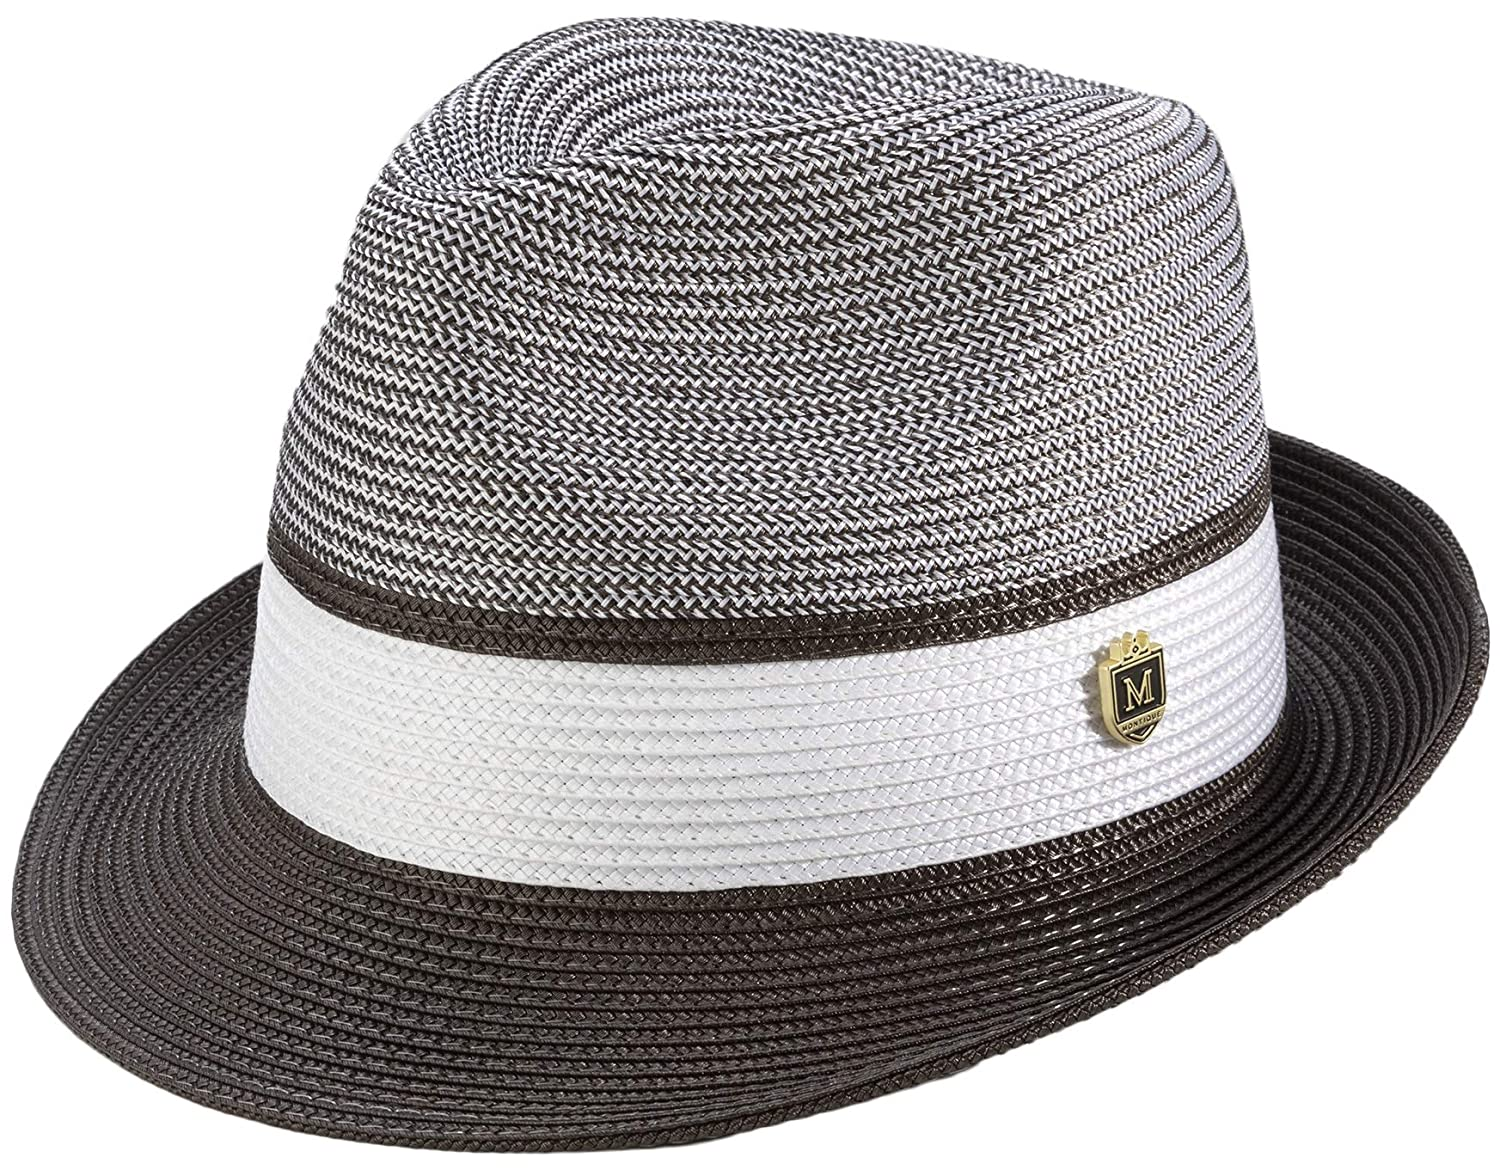 e873696601efc MONTIQUE Men s Braided Two Tone Pinch Fedora Hat H22 at Amazon Men s  Clothing store